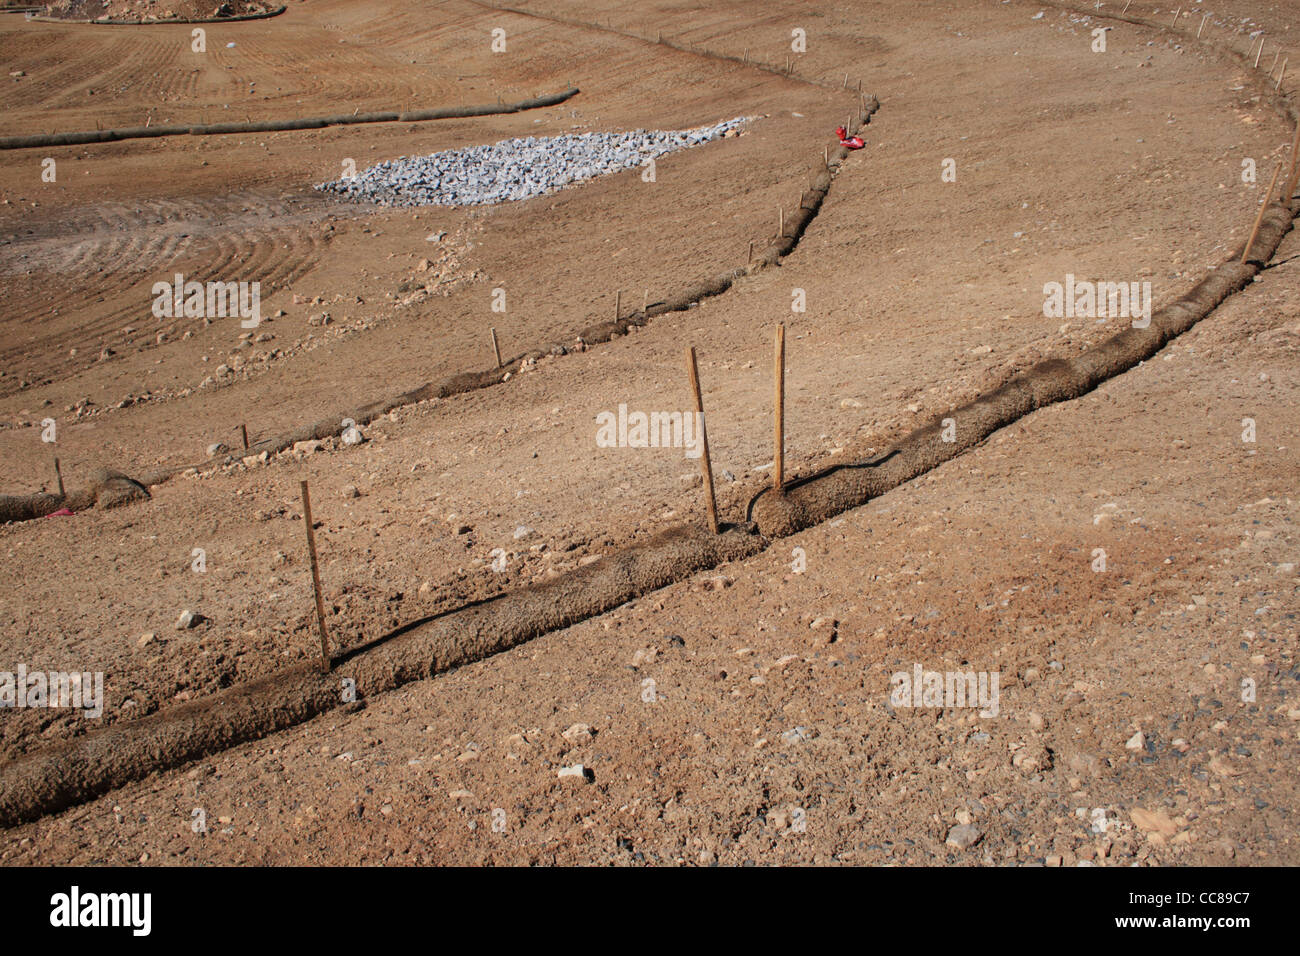 straw wattle erosion control structure protects soil and runoff at graded construction site - Stock Image